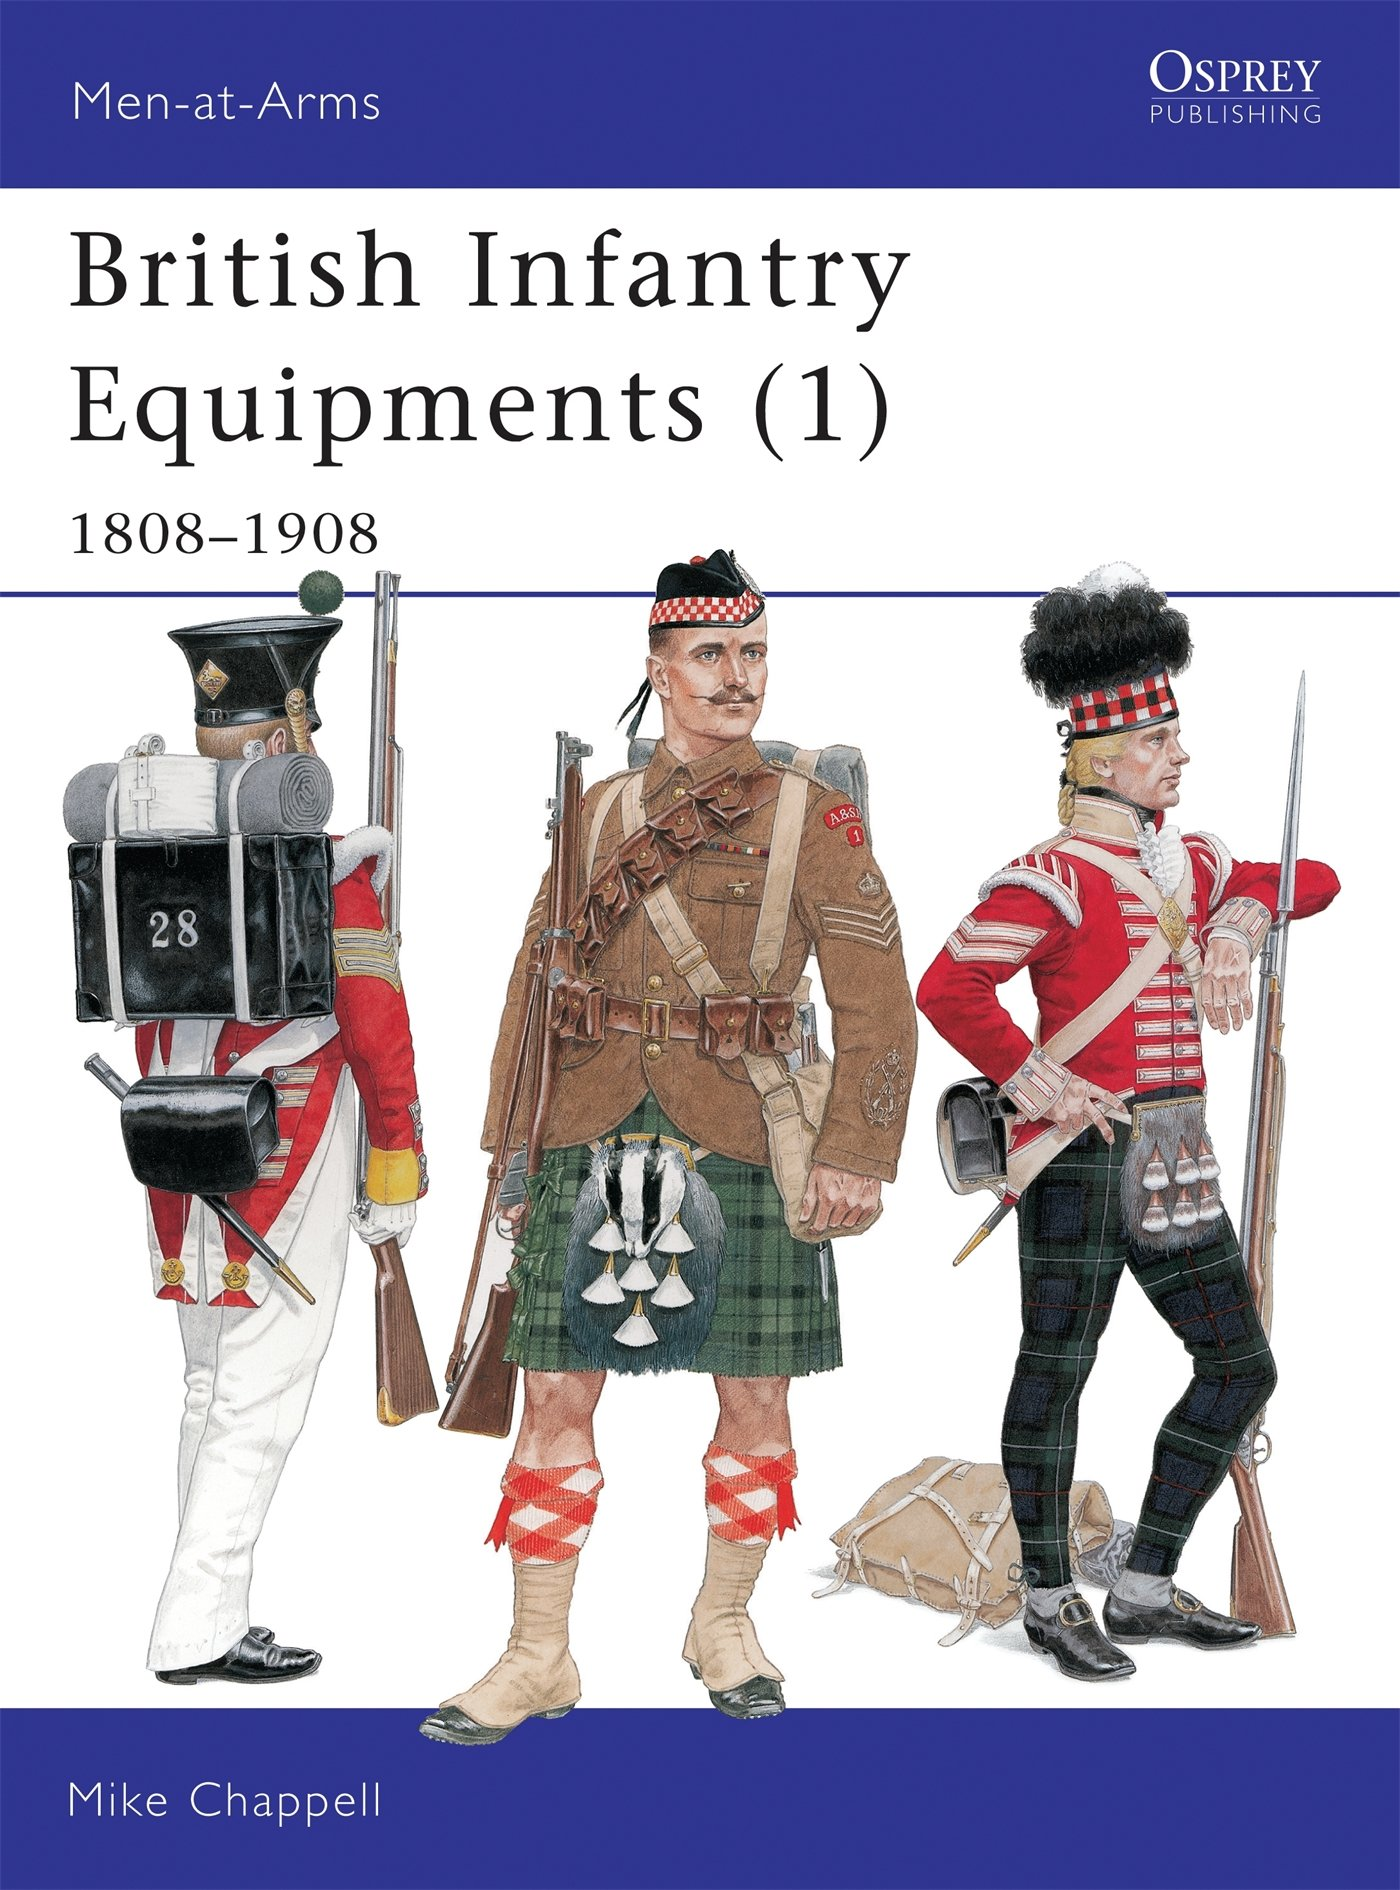 British Infantry Equipments (1): 1808-1908 (Men-at-Arms Band 107)